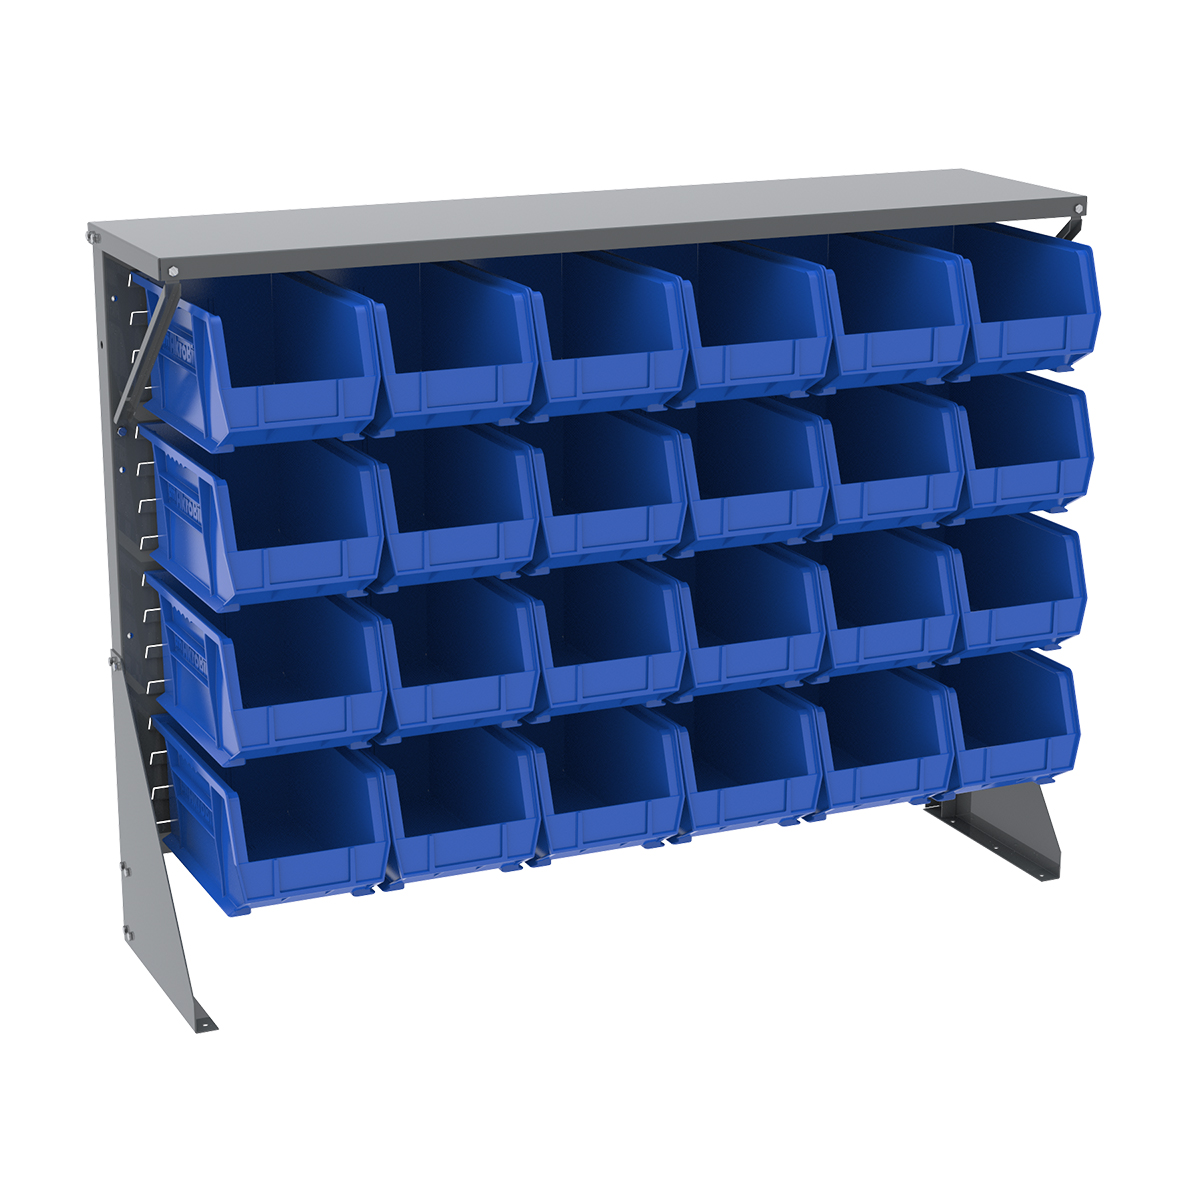 Item DISCONTINUED by Manufacturer.  Low Profile Floor Rack, 1-Sided, Shelf w/ 24 AkroBins, Gray/Blue (30650GY240B).  This item sold in carton quantities of 1.